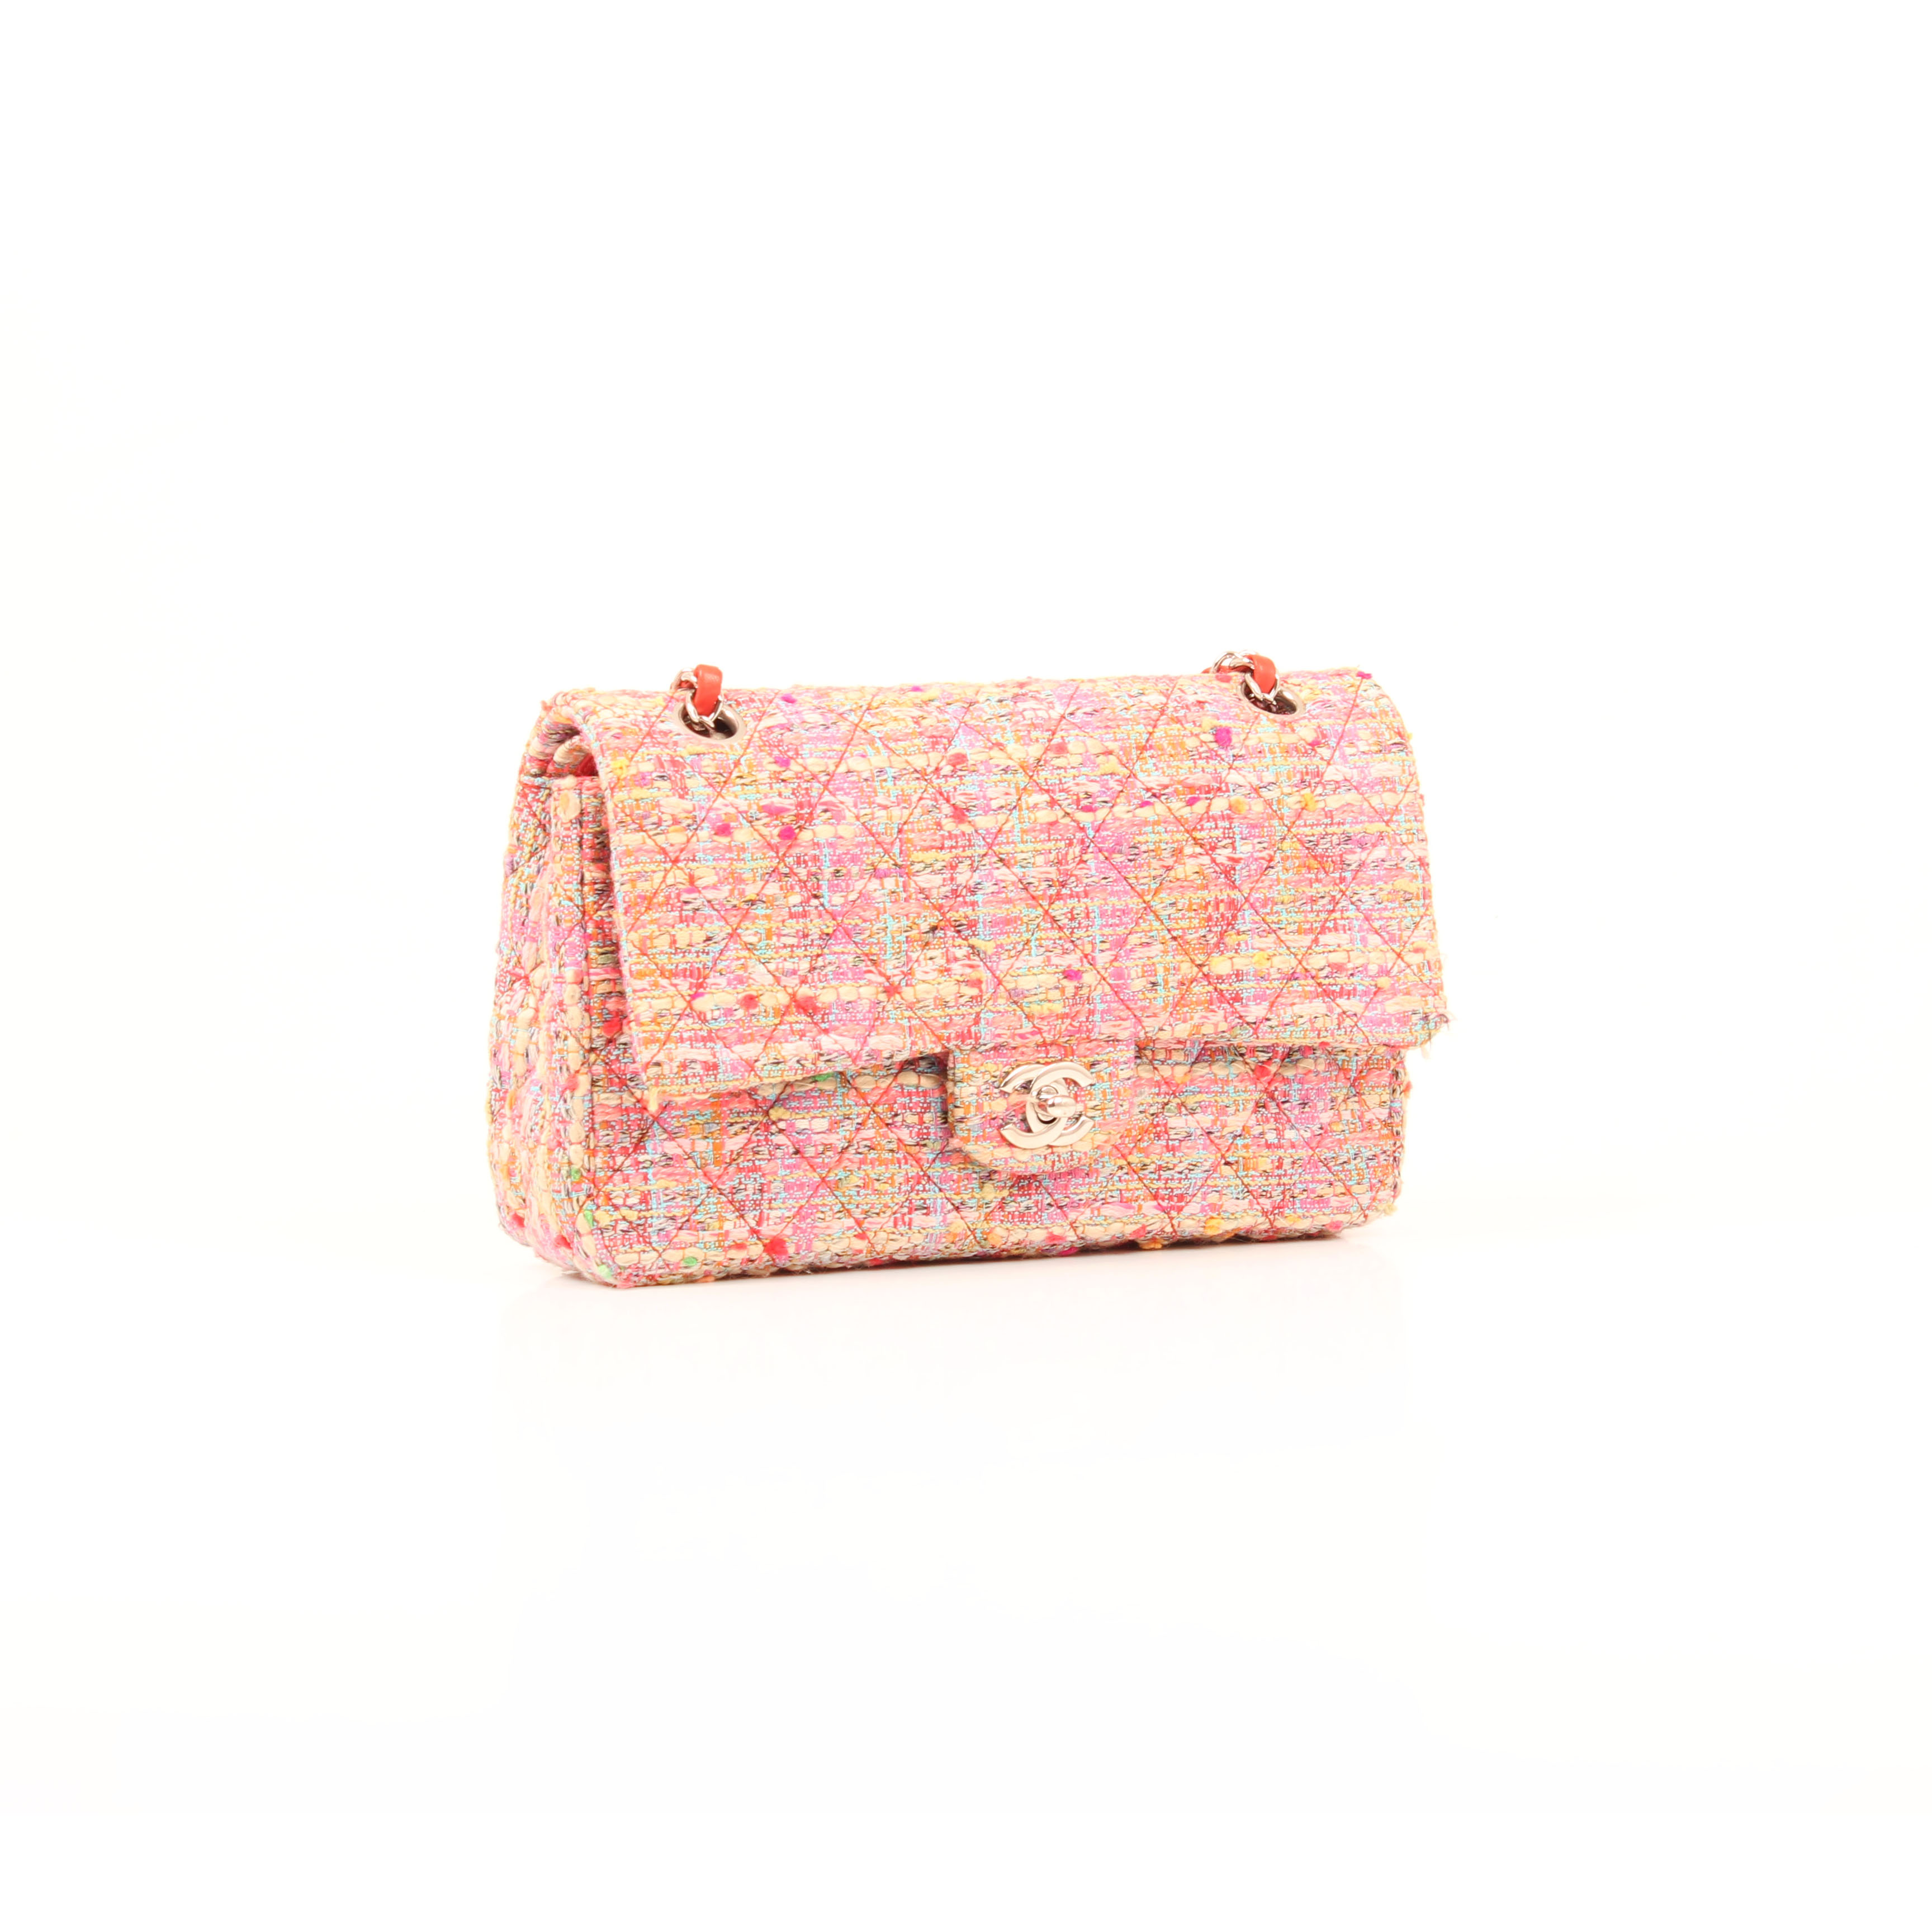 General image from chanel timeless tweed pink multicolor neon double flap bag